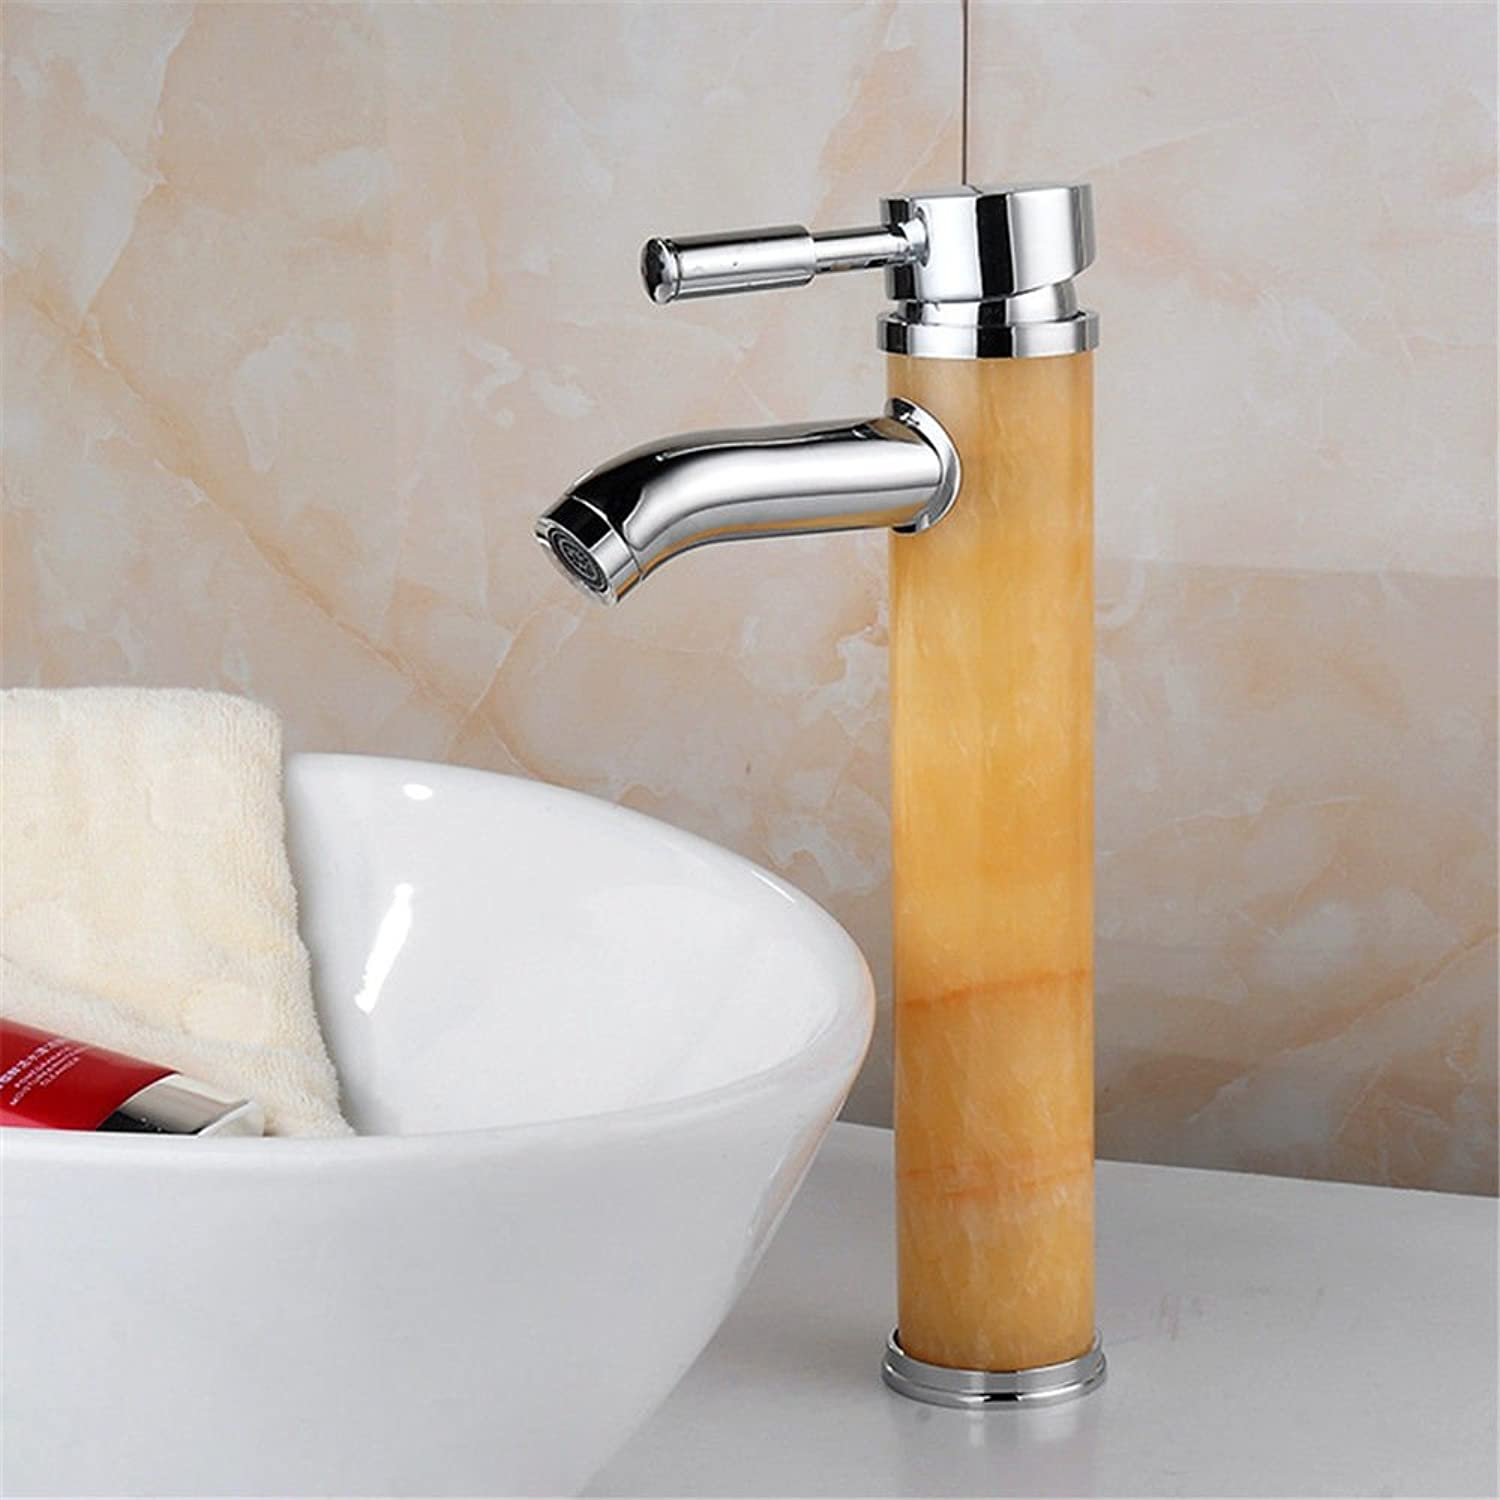 Lalaky Taps Faucet Kitchen Mixer Sink Waterfall Bathroom Mixer Basin Mixer Tap for Kitchen Bathroom and Washroom Chrome-Plated greenical